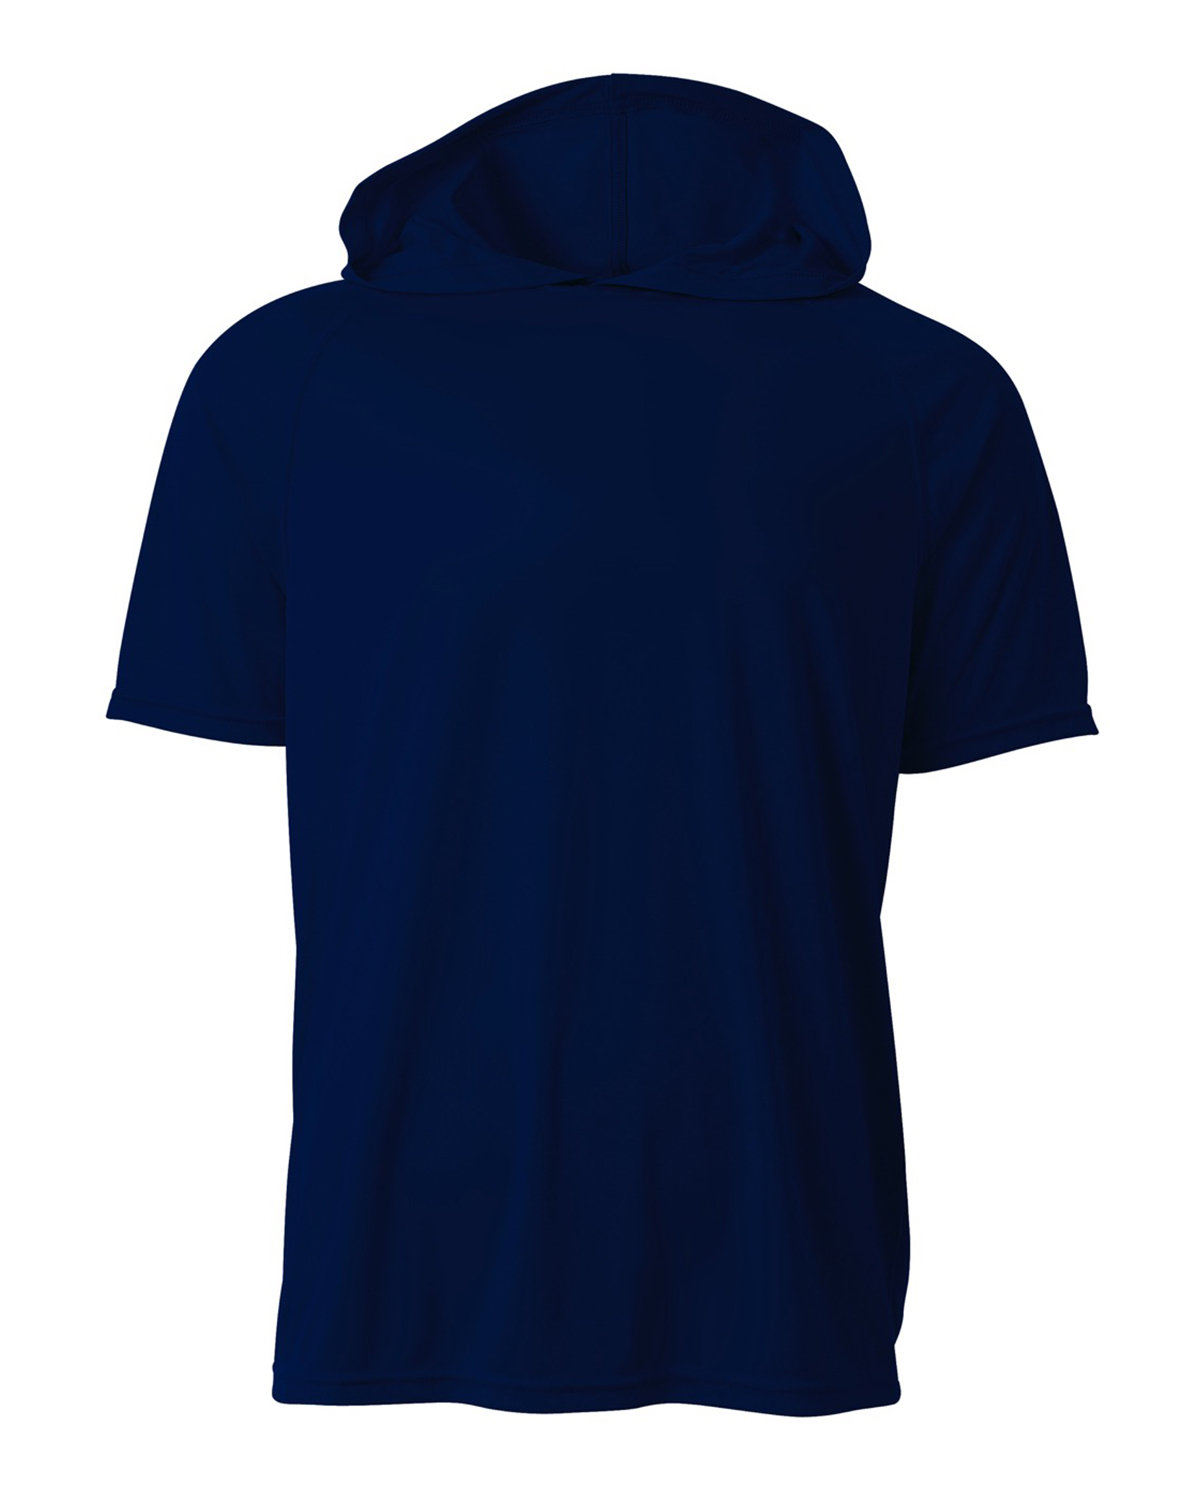 A4 Men's Cooling Performance Hooded T-shirt NAVY